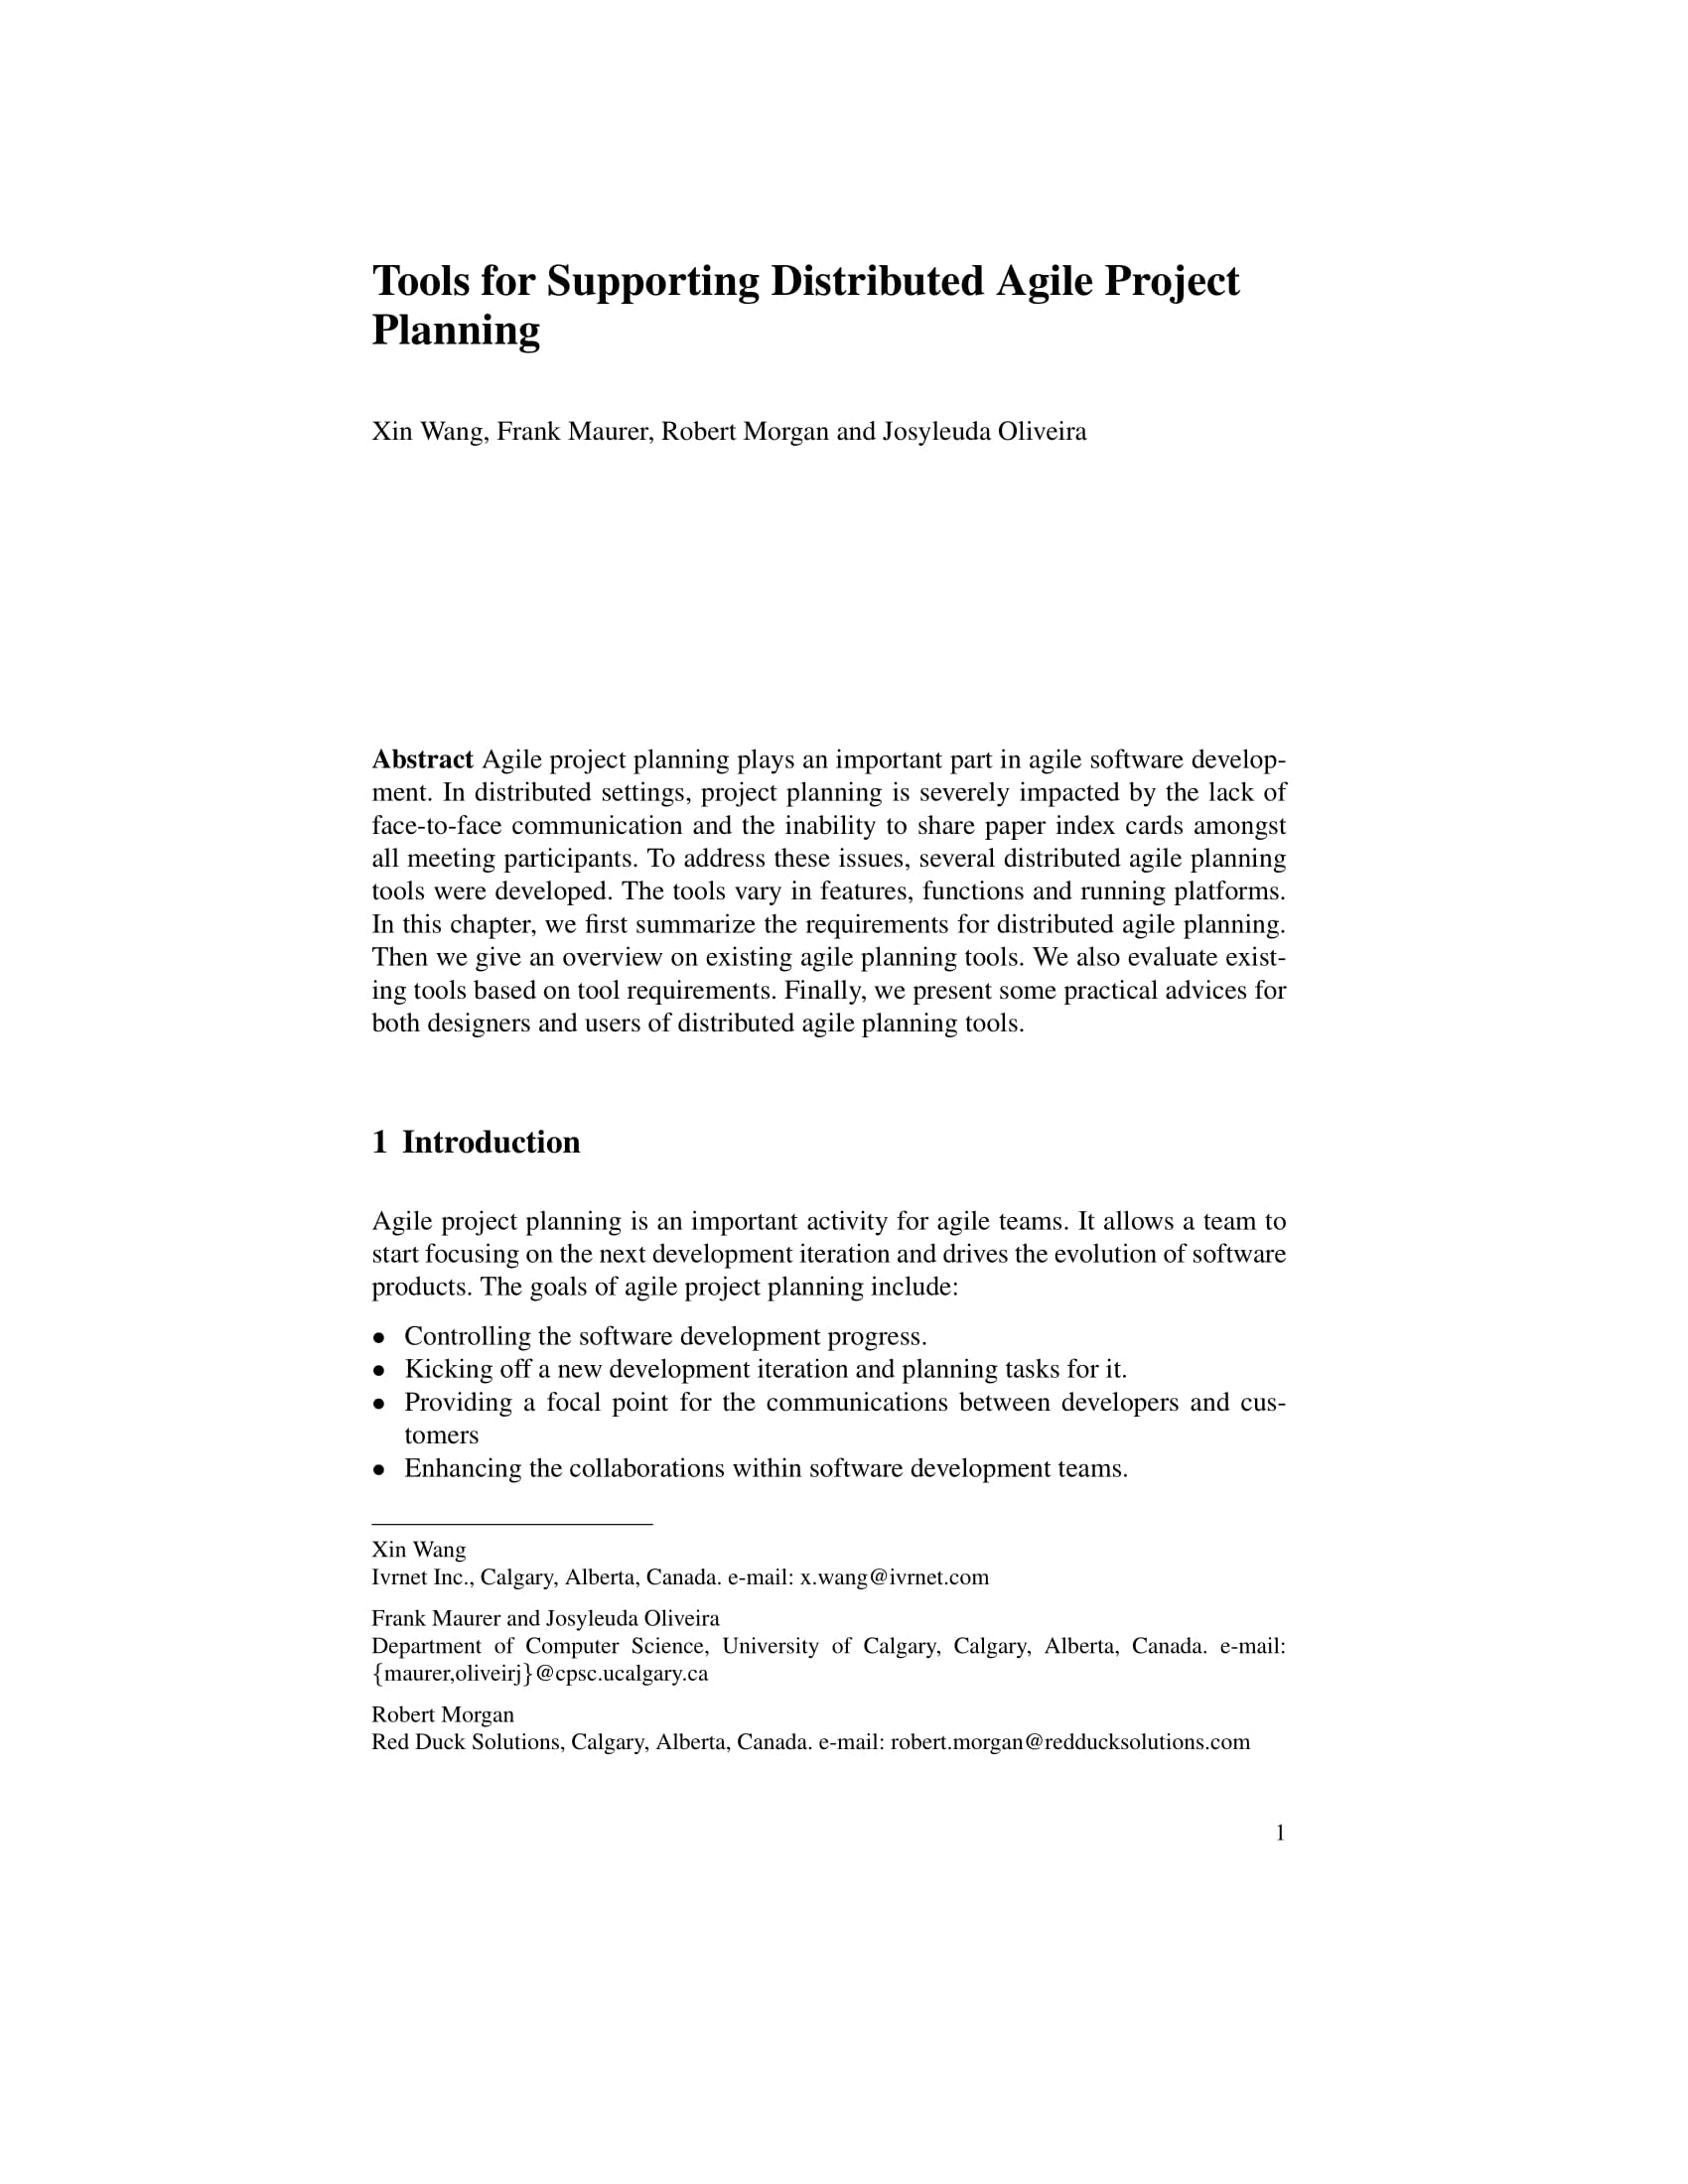 distributed agile project planning tools example 01